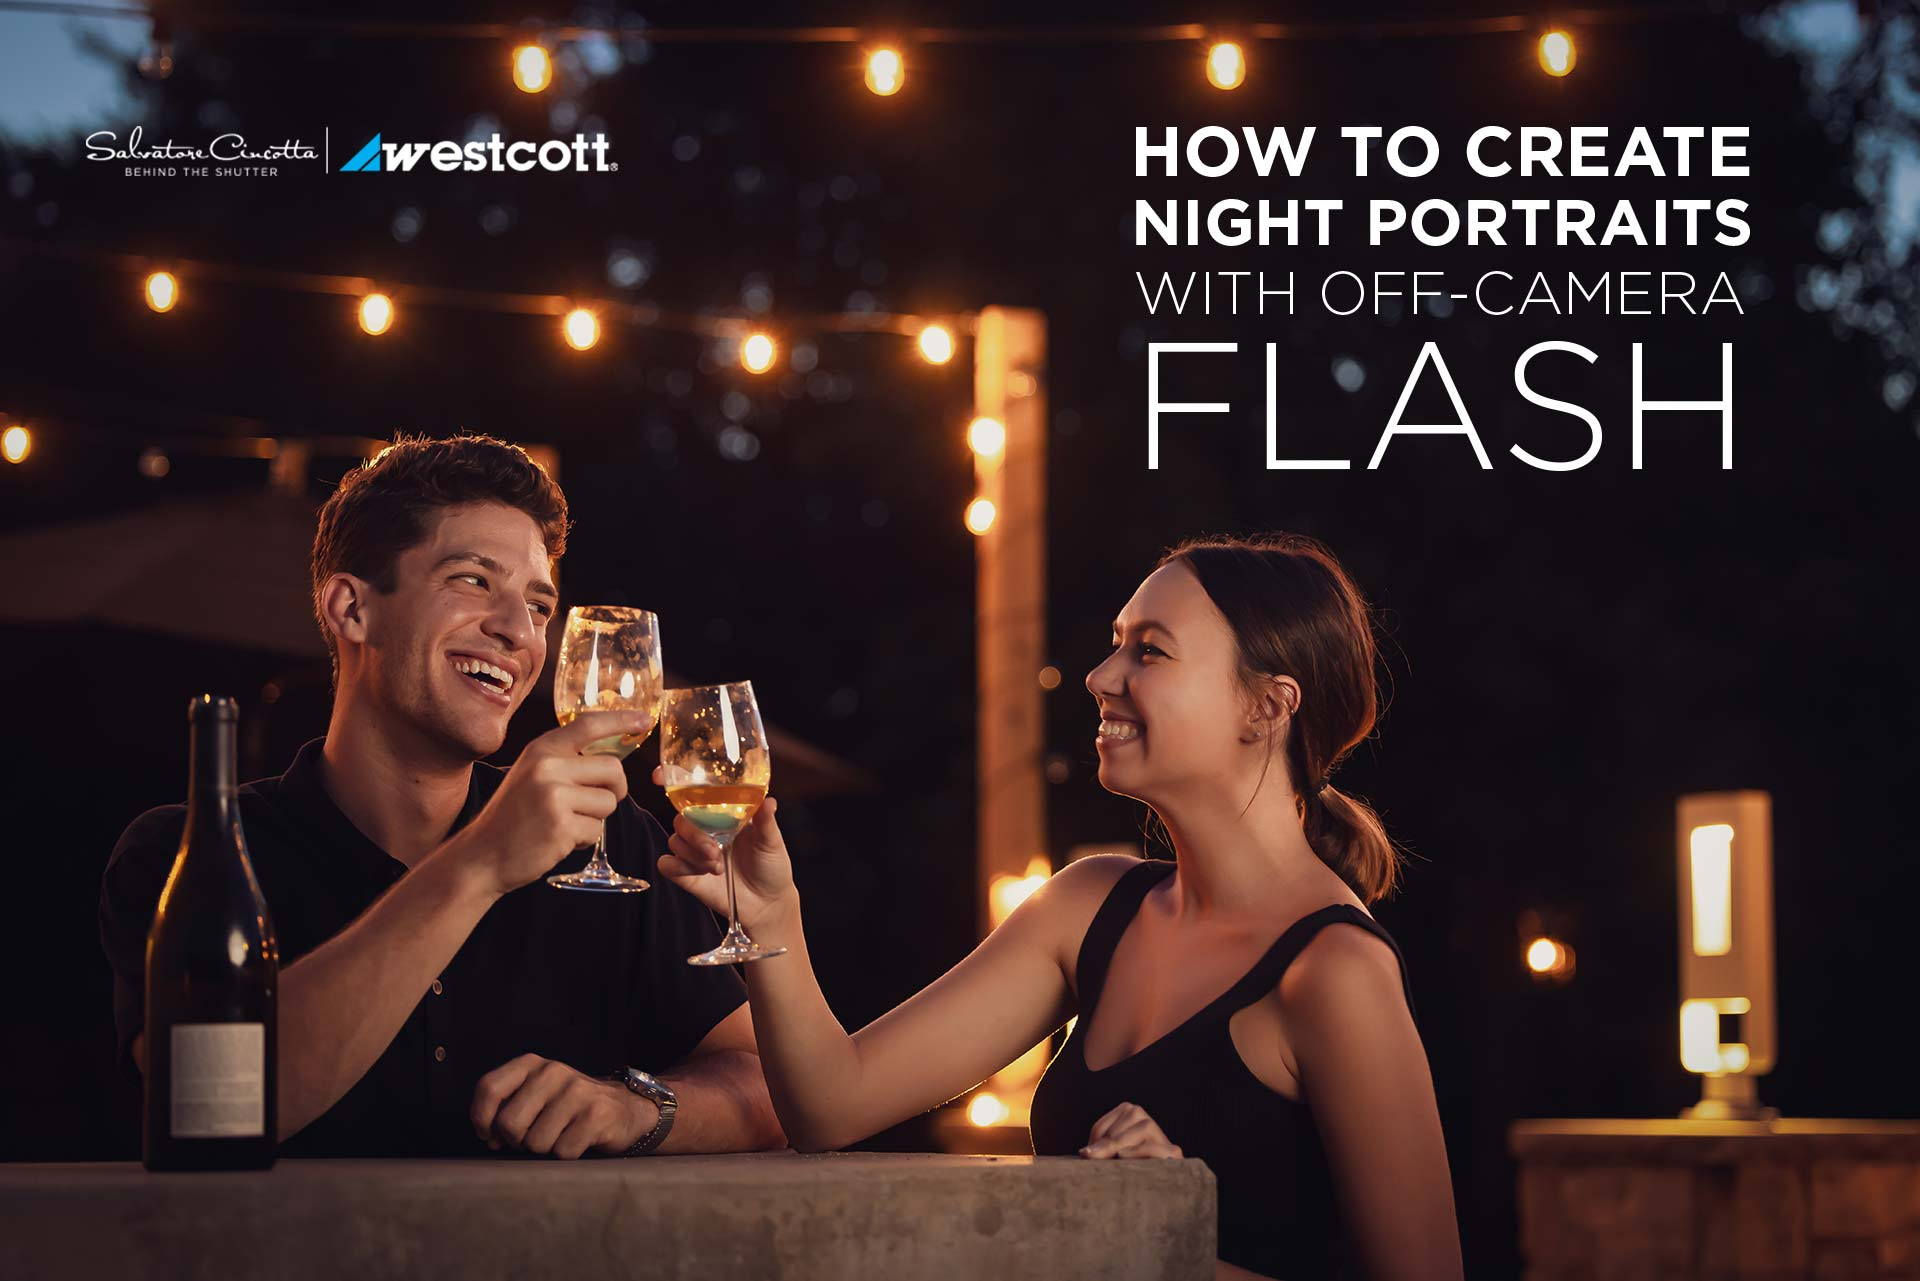 How to Create Night Portraits with Off-Camera Flash